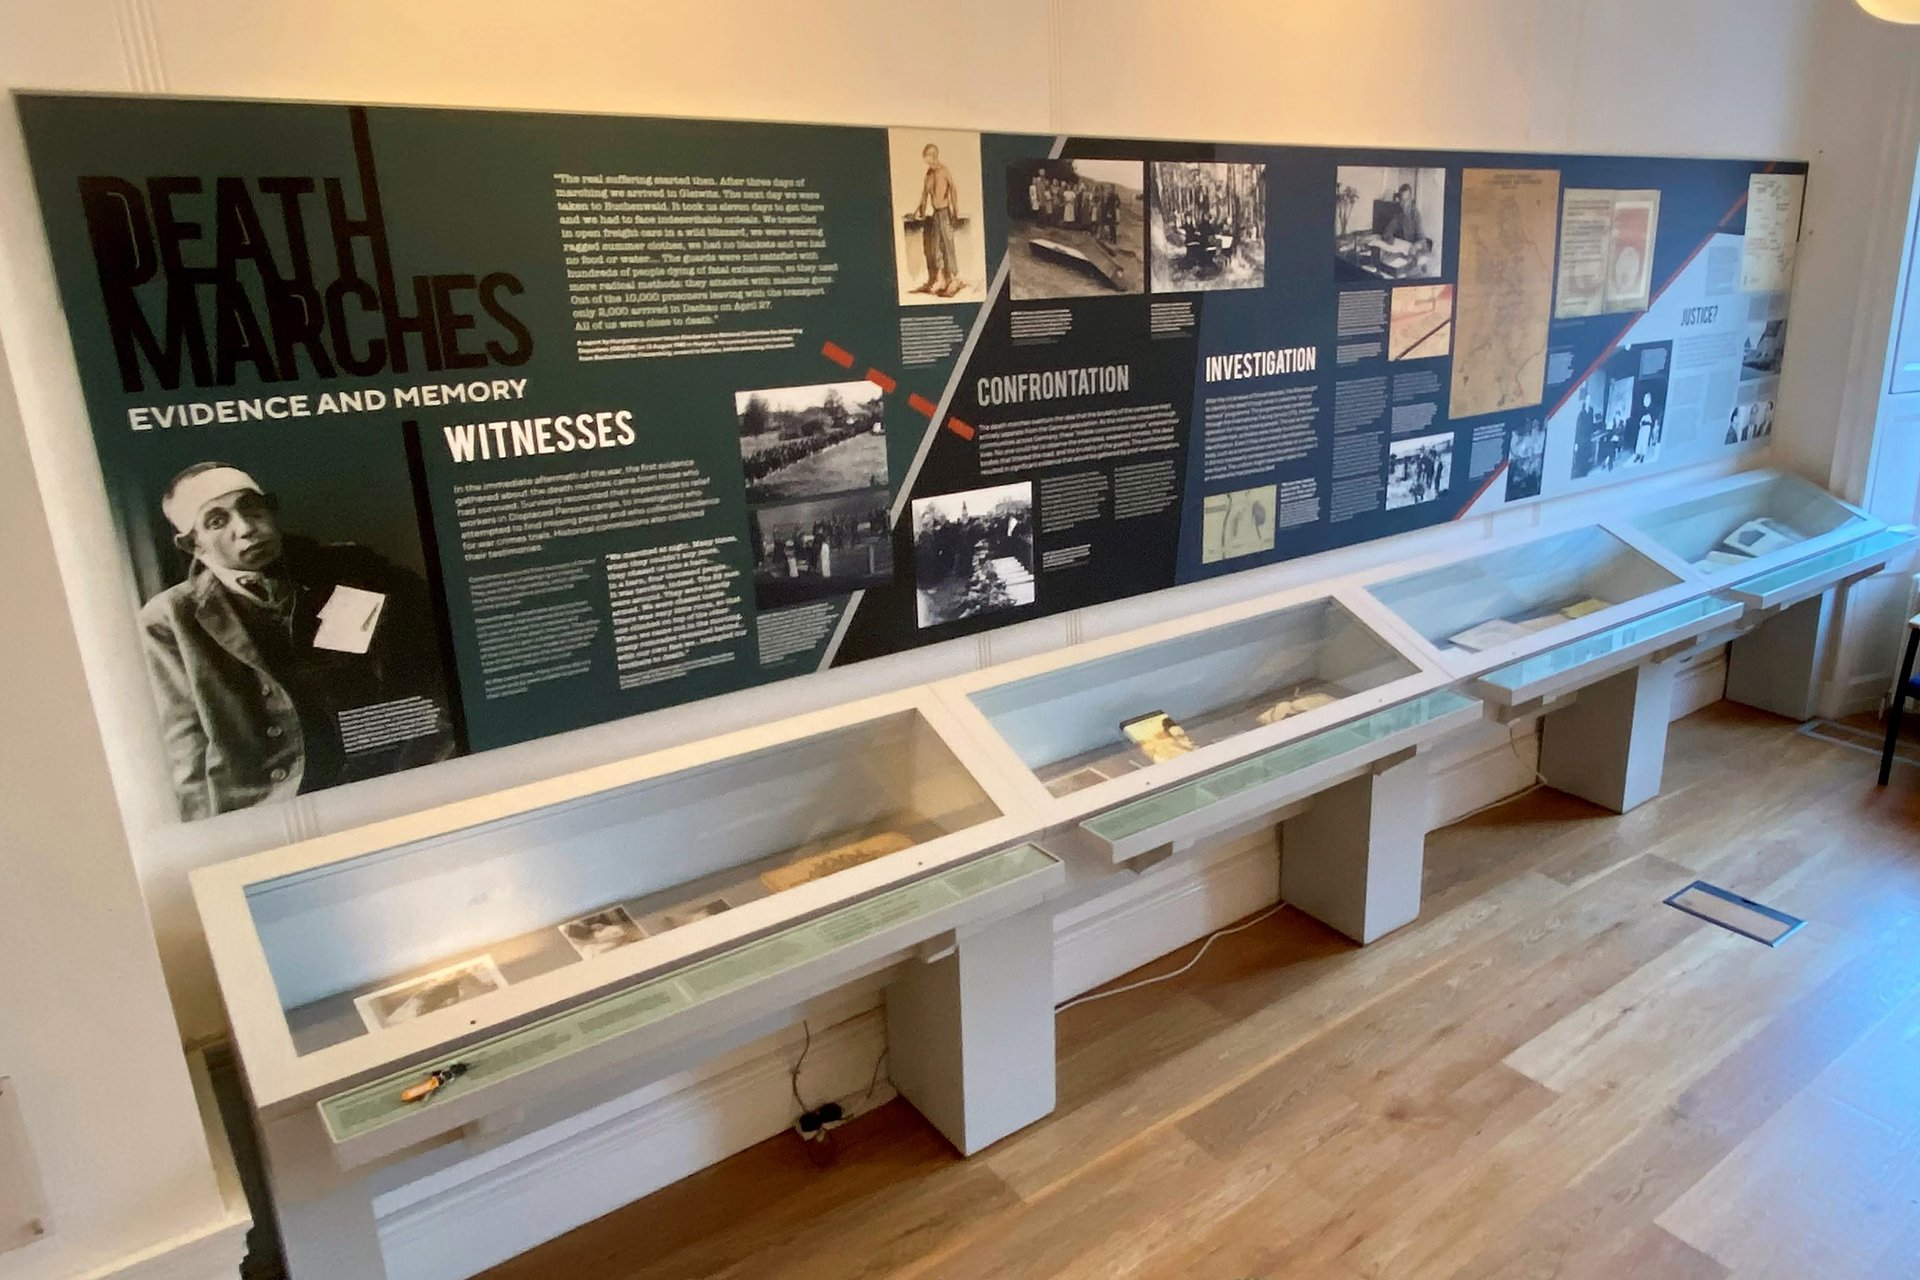 'Death Marches: Evidence and Memory' Exhibition